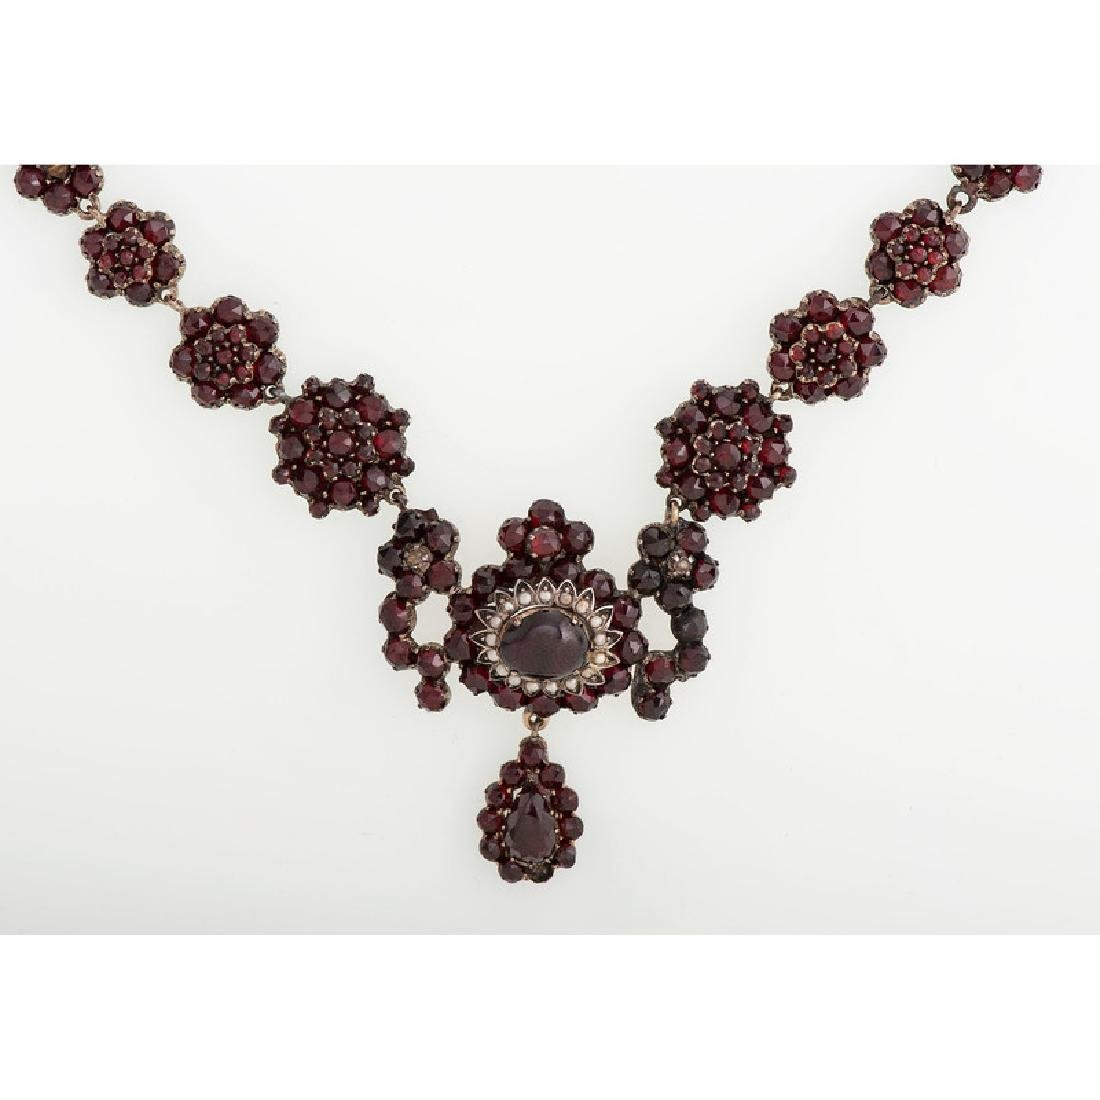 Gilt Metal Bohemian Garnet Necklace - 2